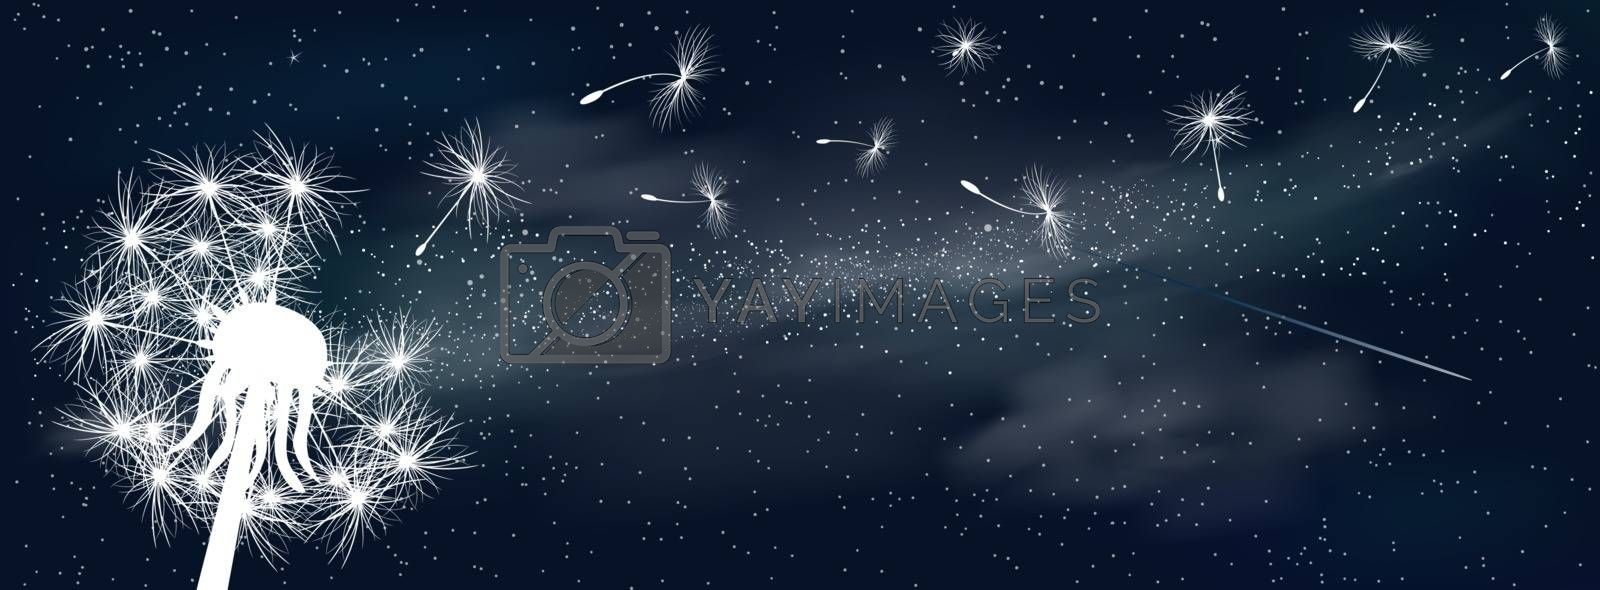 Space background. Fluffy dandelion in the background of the universe. Shining stars and nebula. Night starry sky.